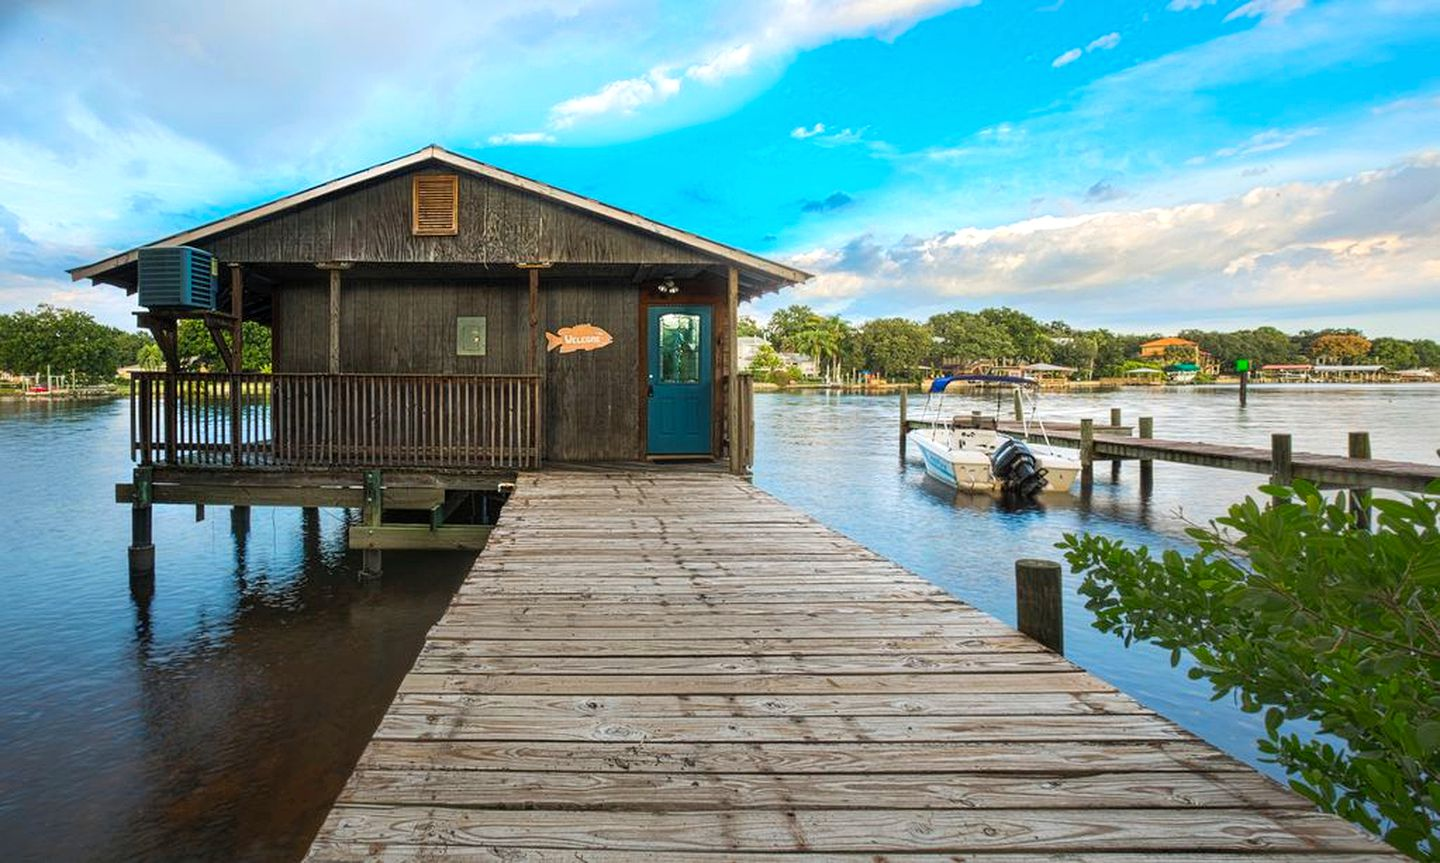 Elevated cabin rental over the water on a river for a family Tampa vacation in Florida.